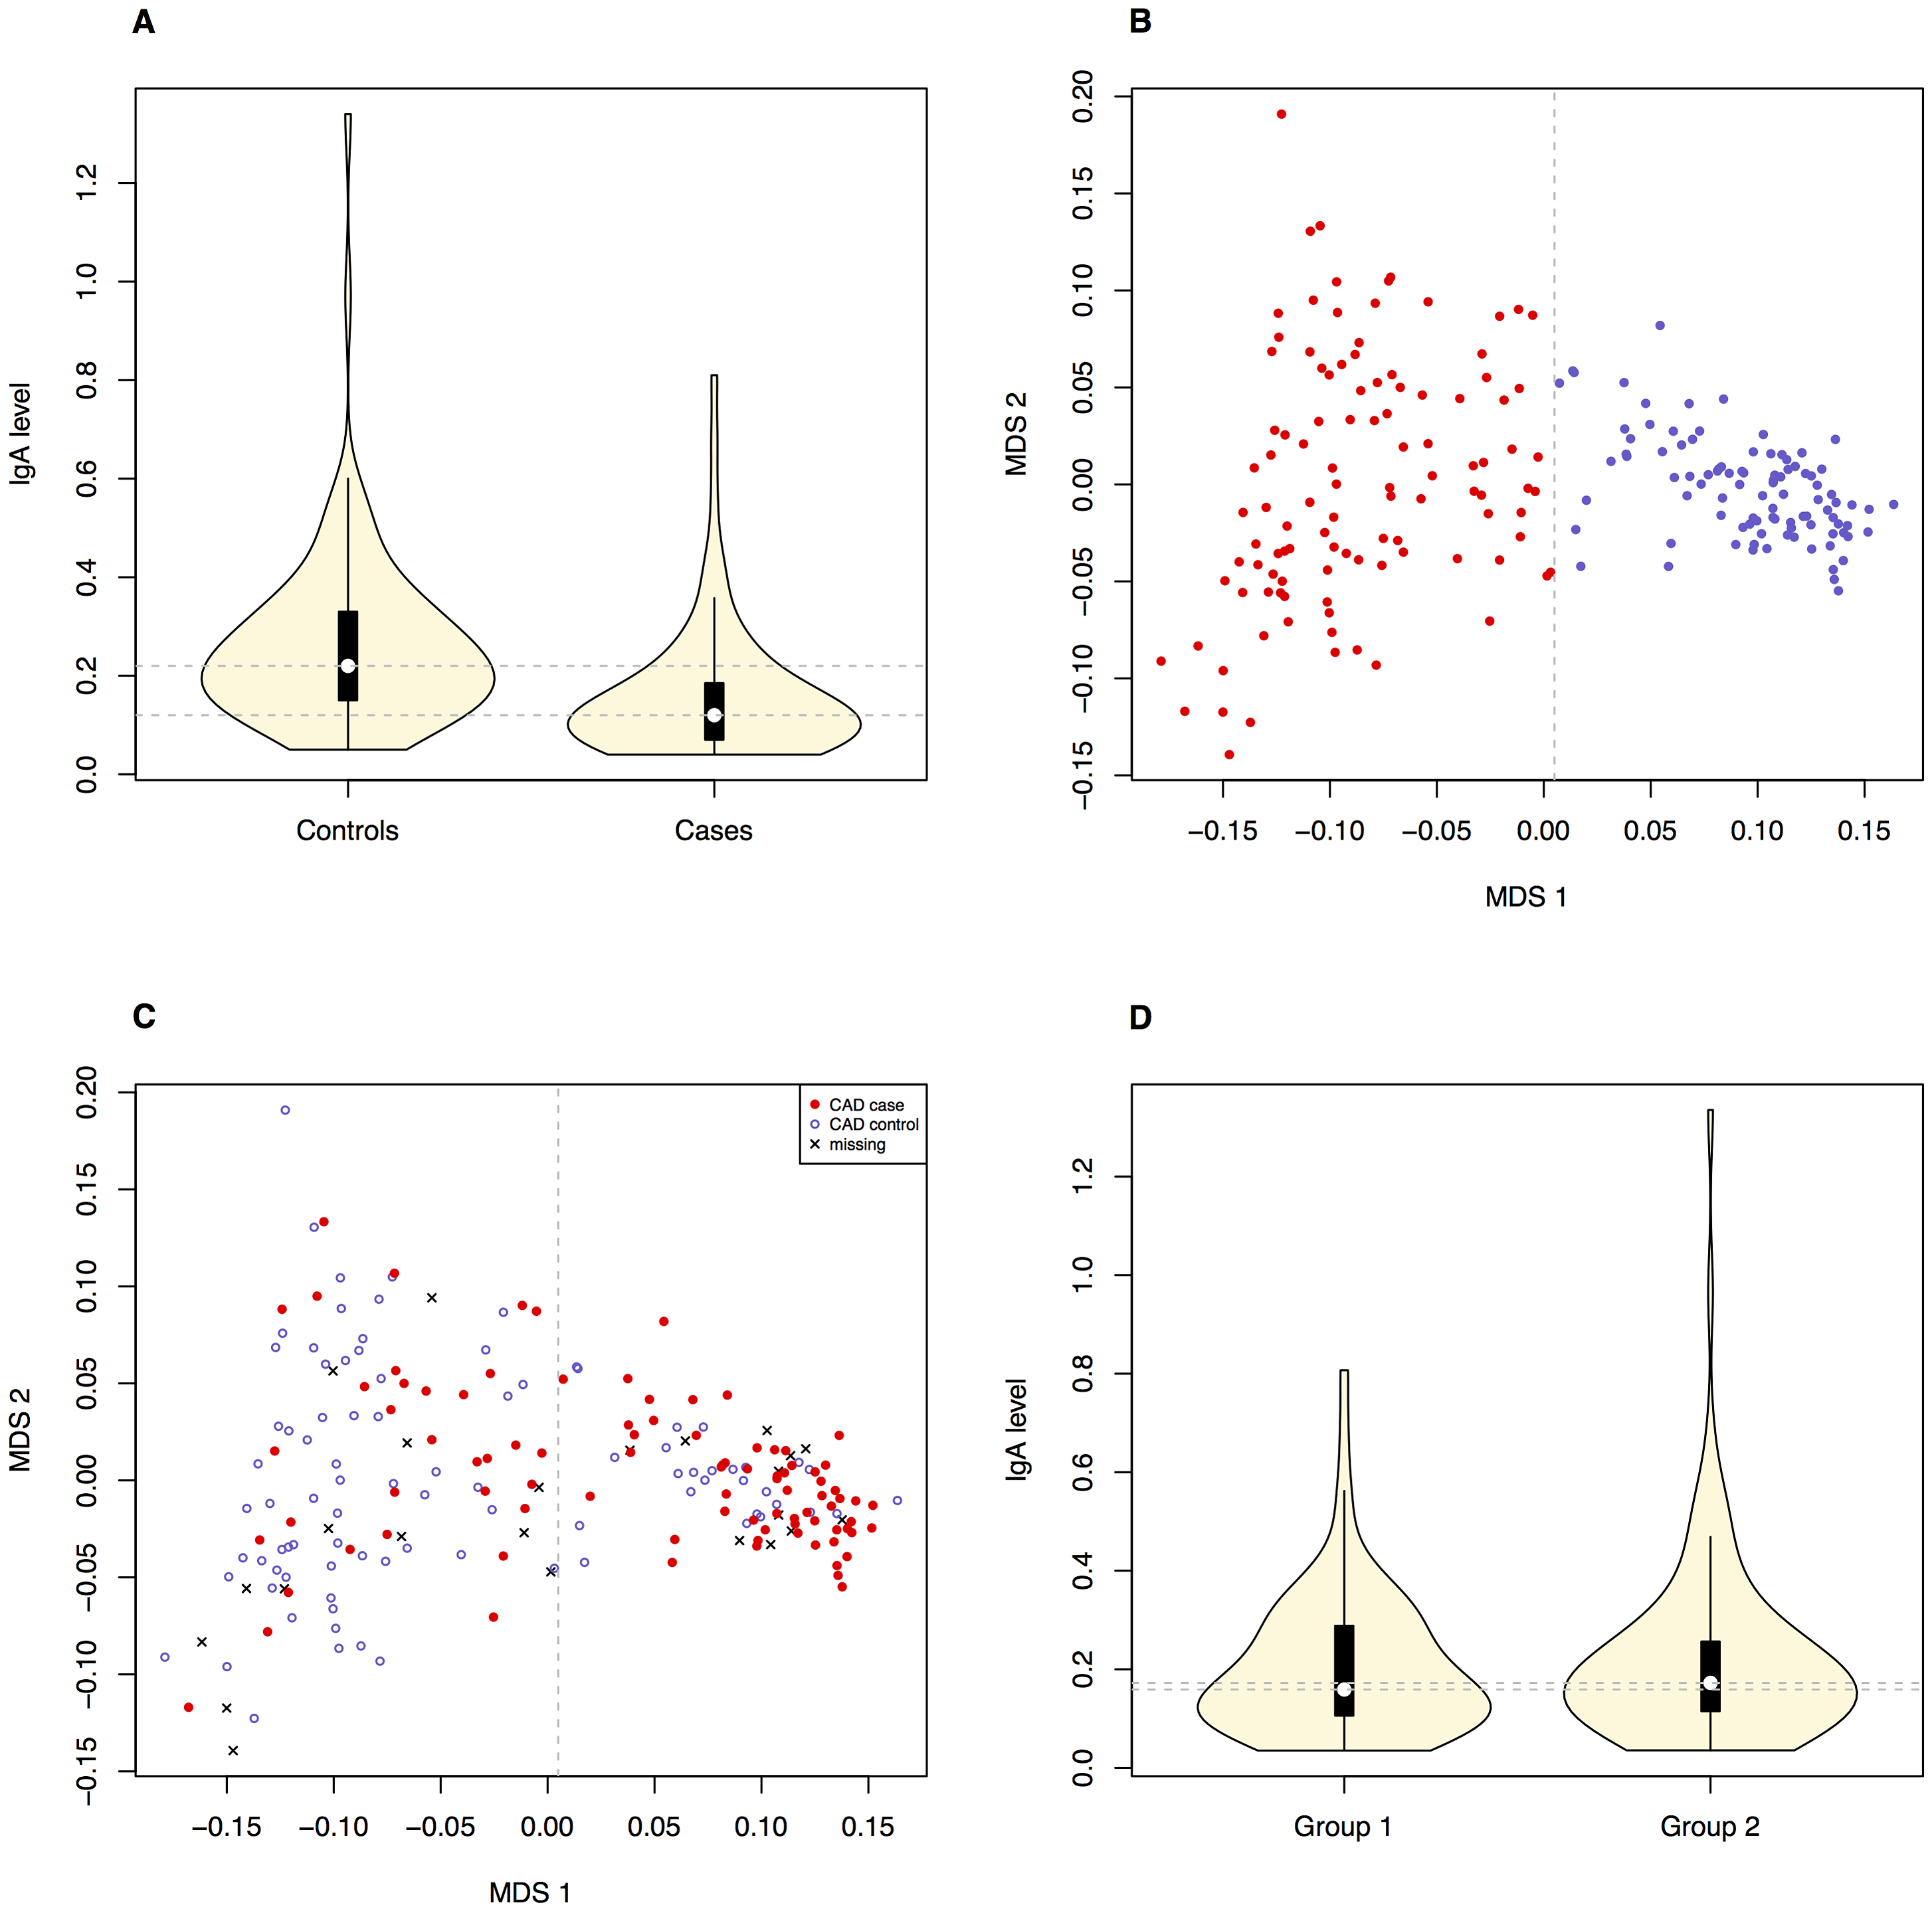 Correlation between the phenotypes and obvious population structure was detected in the GSD population.